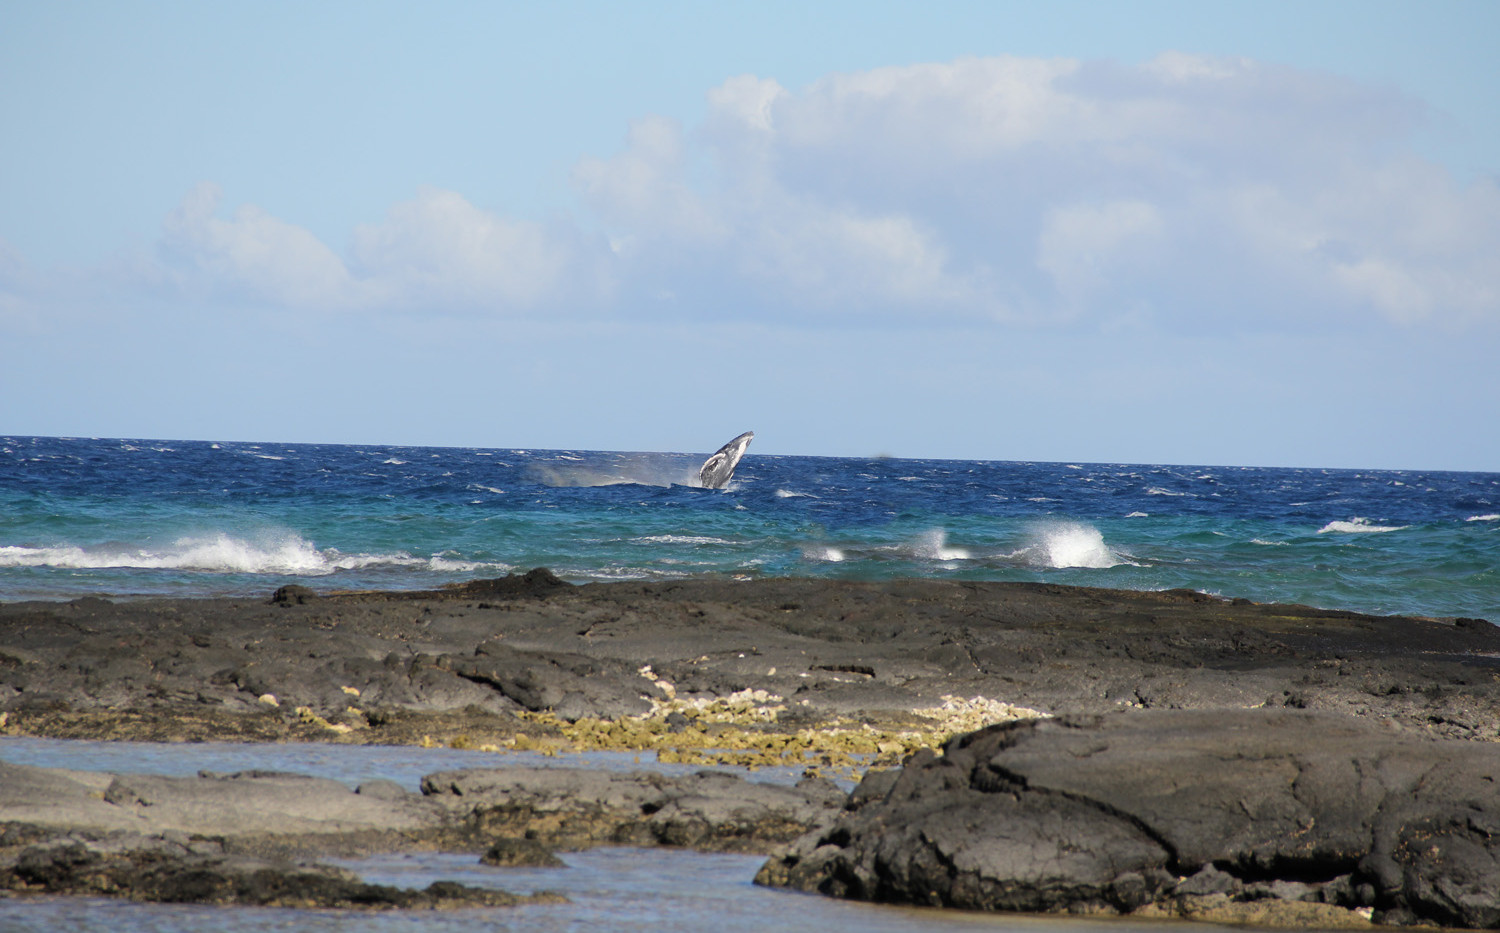 Great whale viewing during whale season